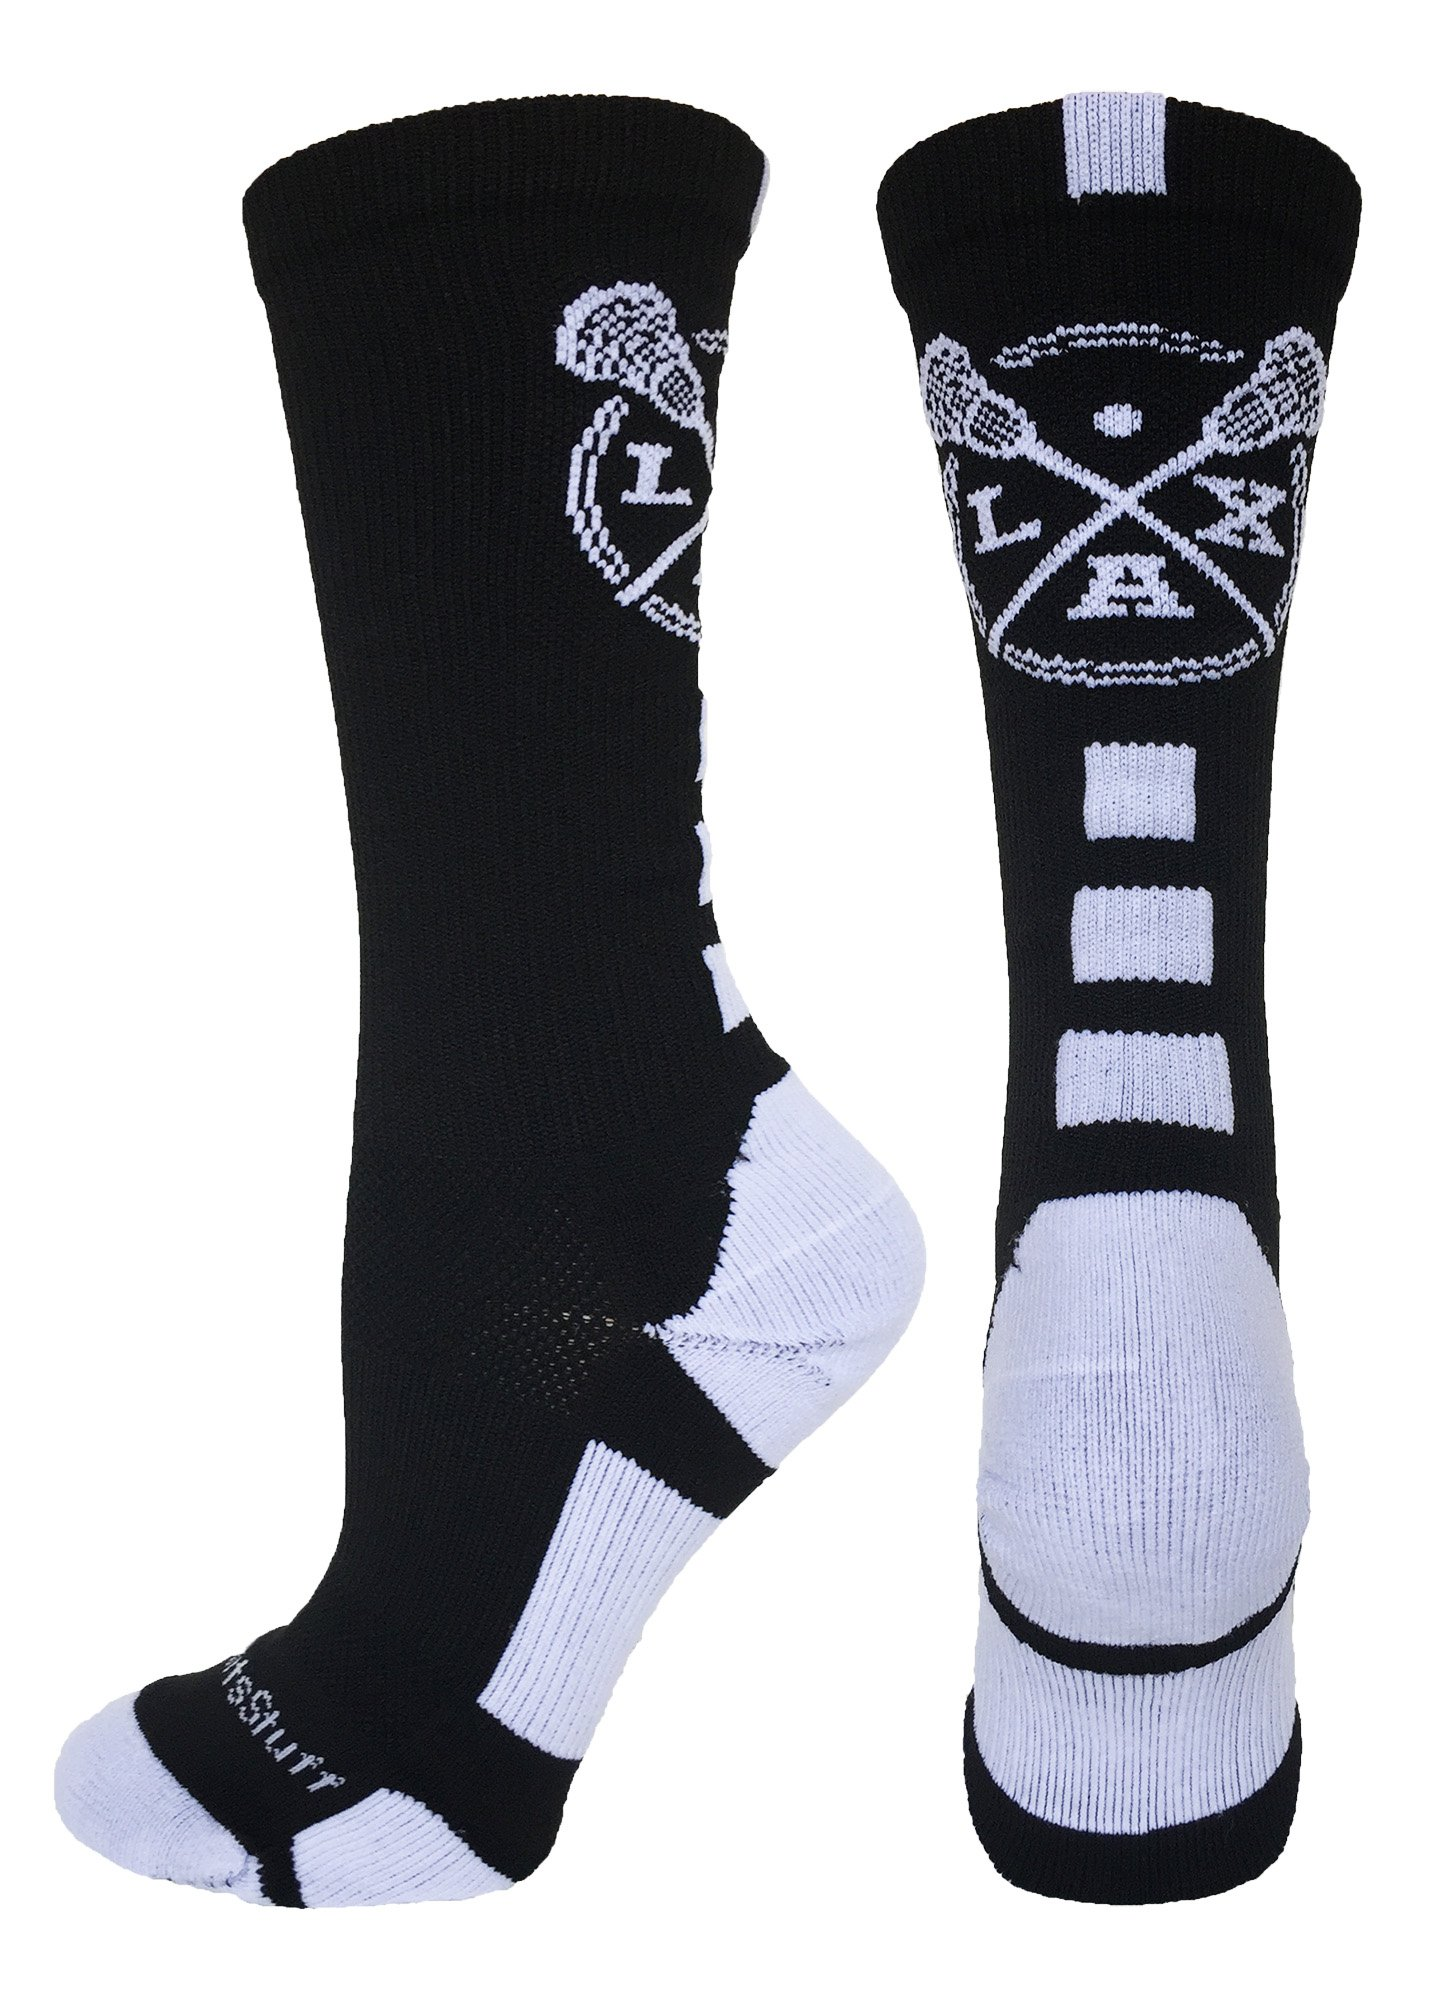 MadSportsStuff LAX Lacrosse Socks with Lacrosse Sticks Athletic Crew Socks (Black/White, Medium) by MadSportsStuff